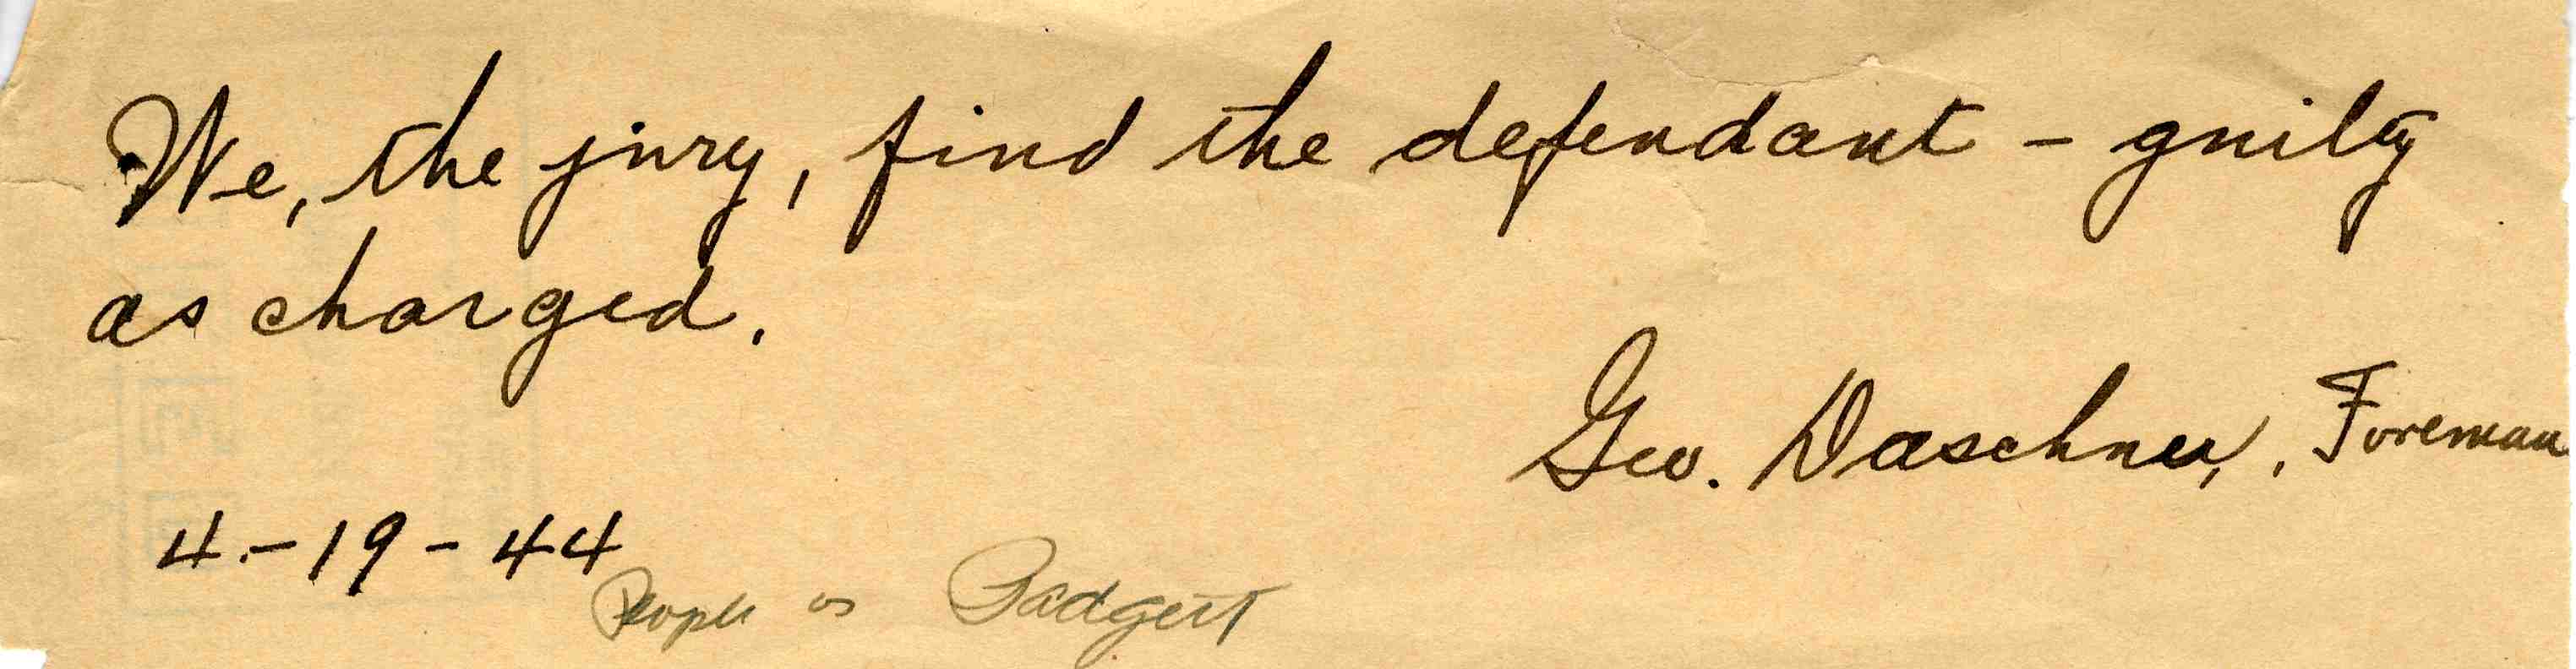 Foreman's Note To Judge Chenot In Murder Trial of William H. Padgett, April 1944 image